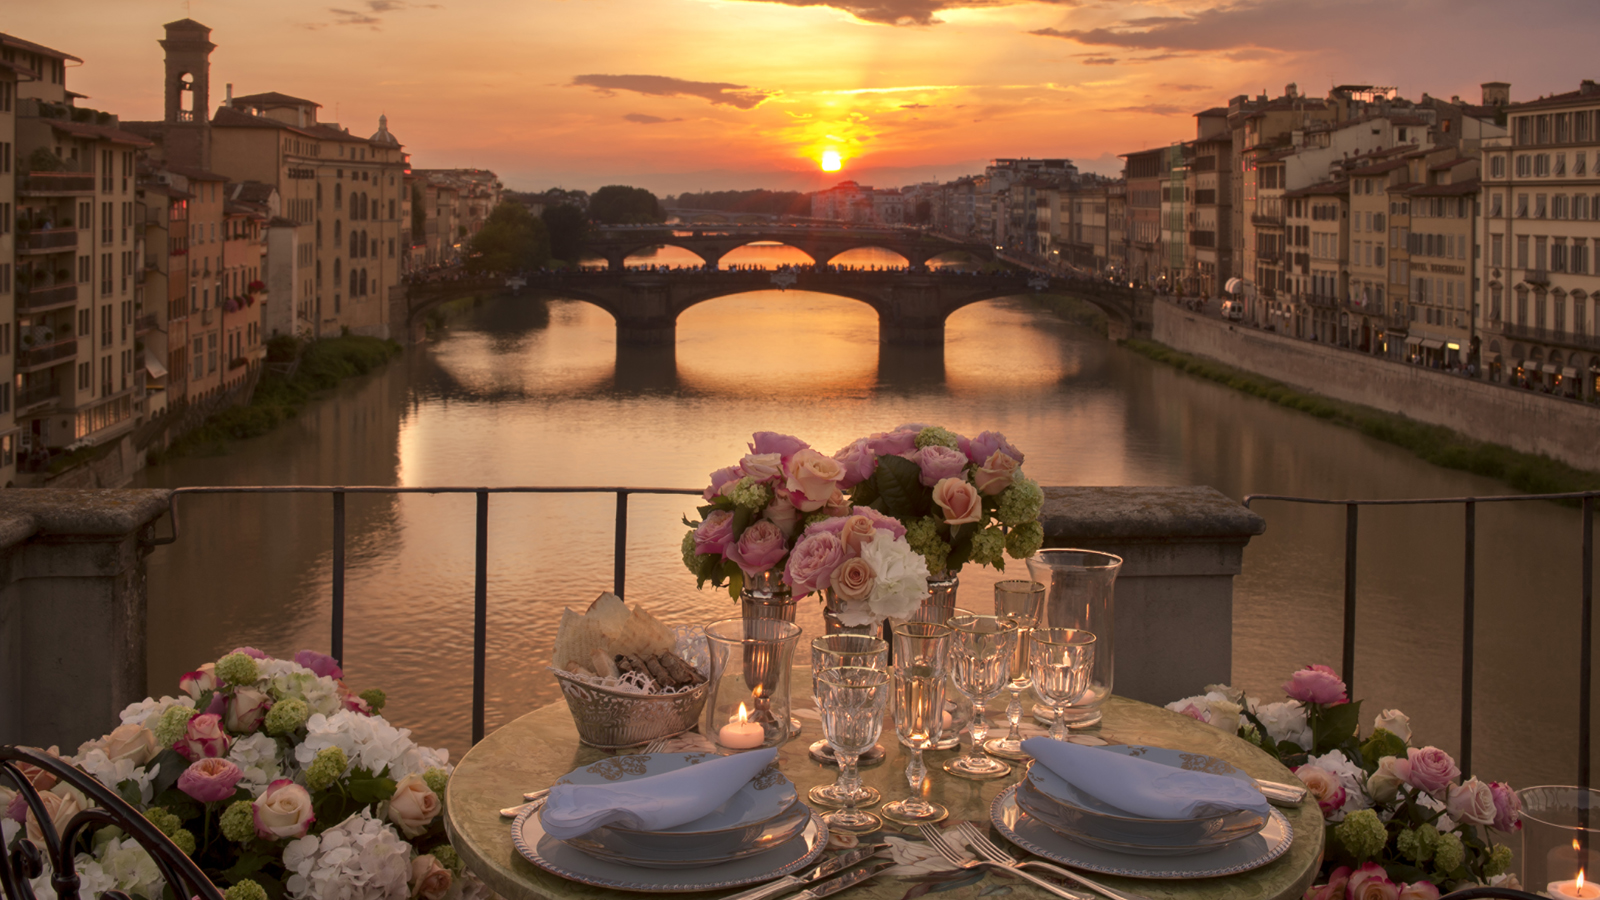 Four seasons hotel firenze presents a unique dining experience on the one and only open terrace of ponte vecchio